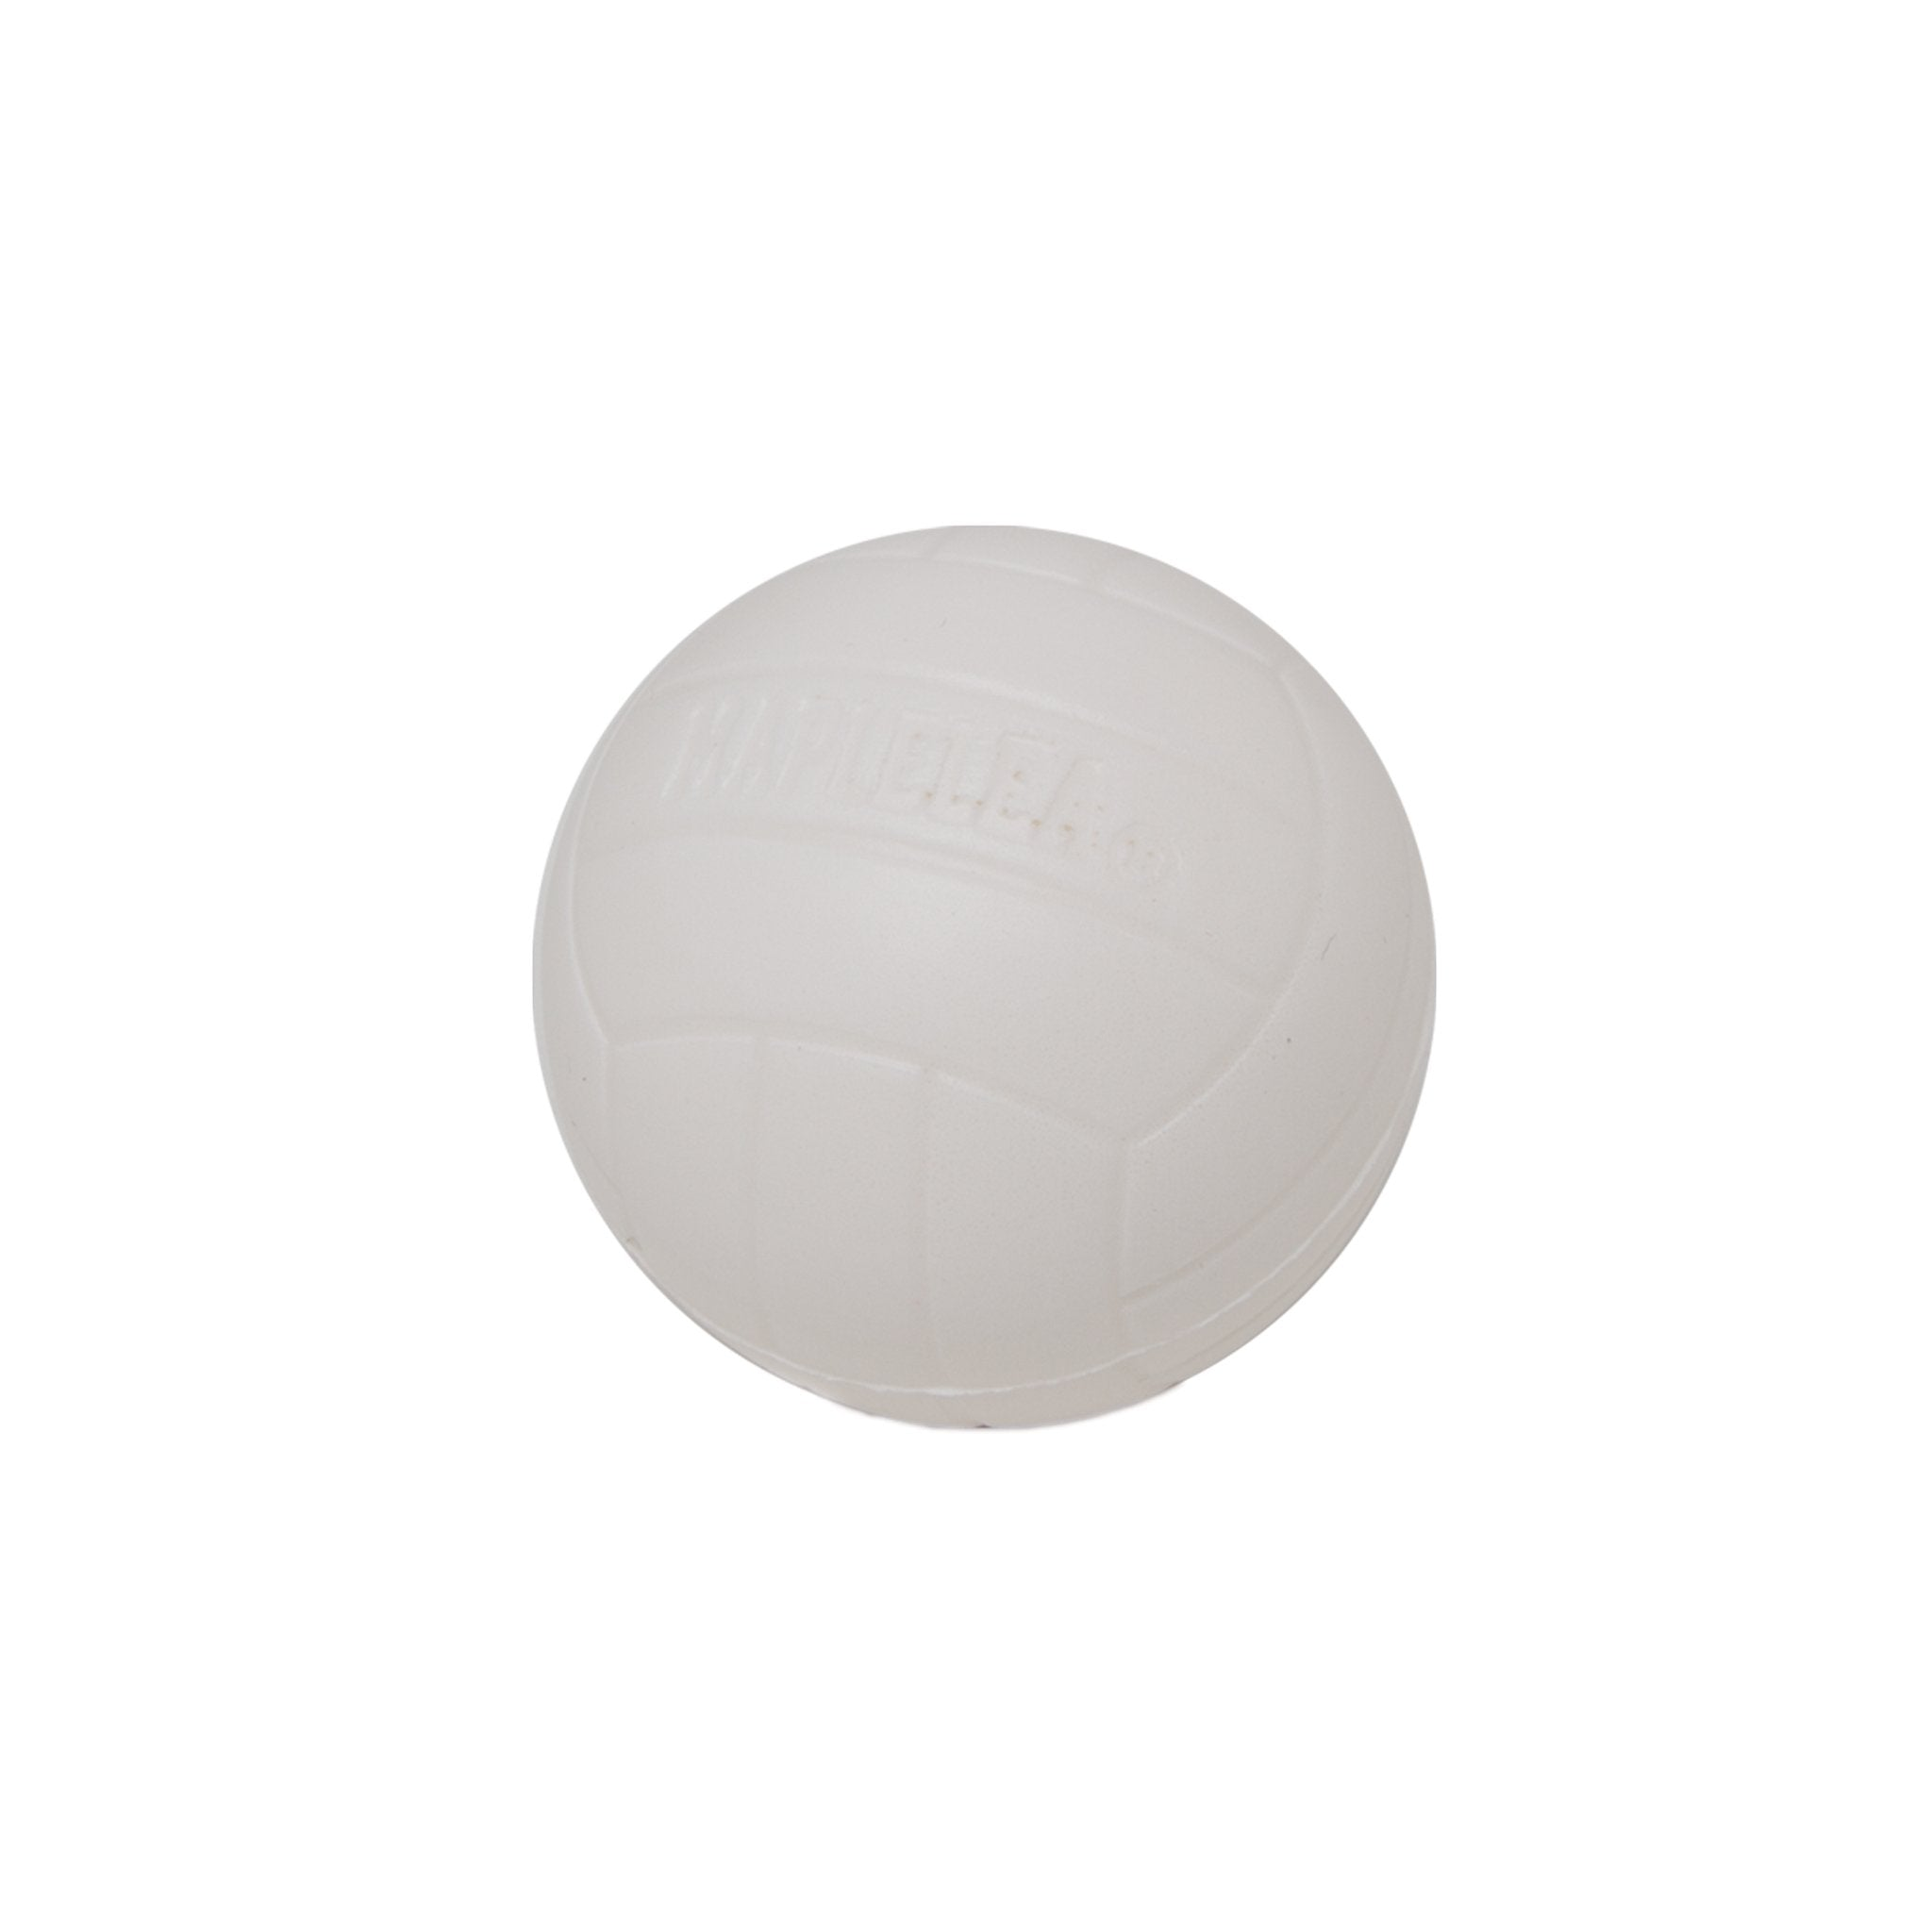 miniature volleyball for 18 inch dolls